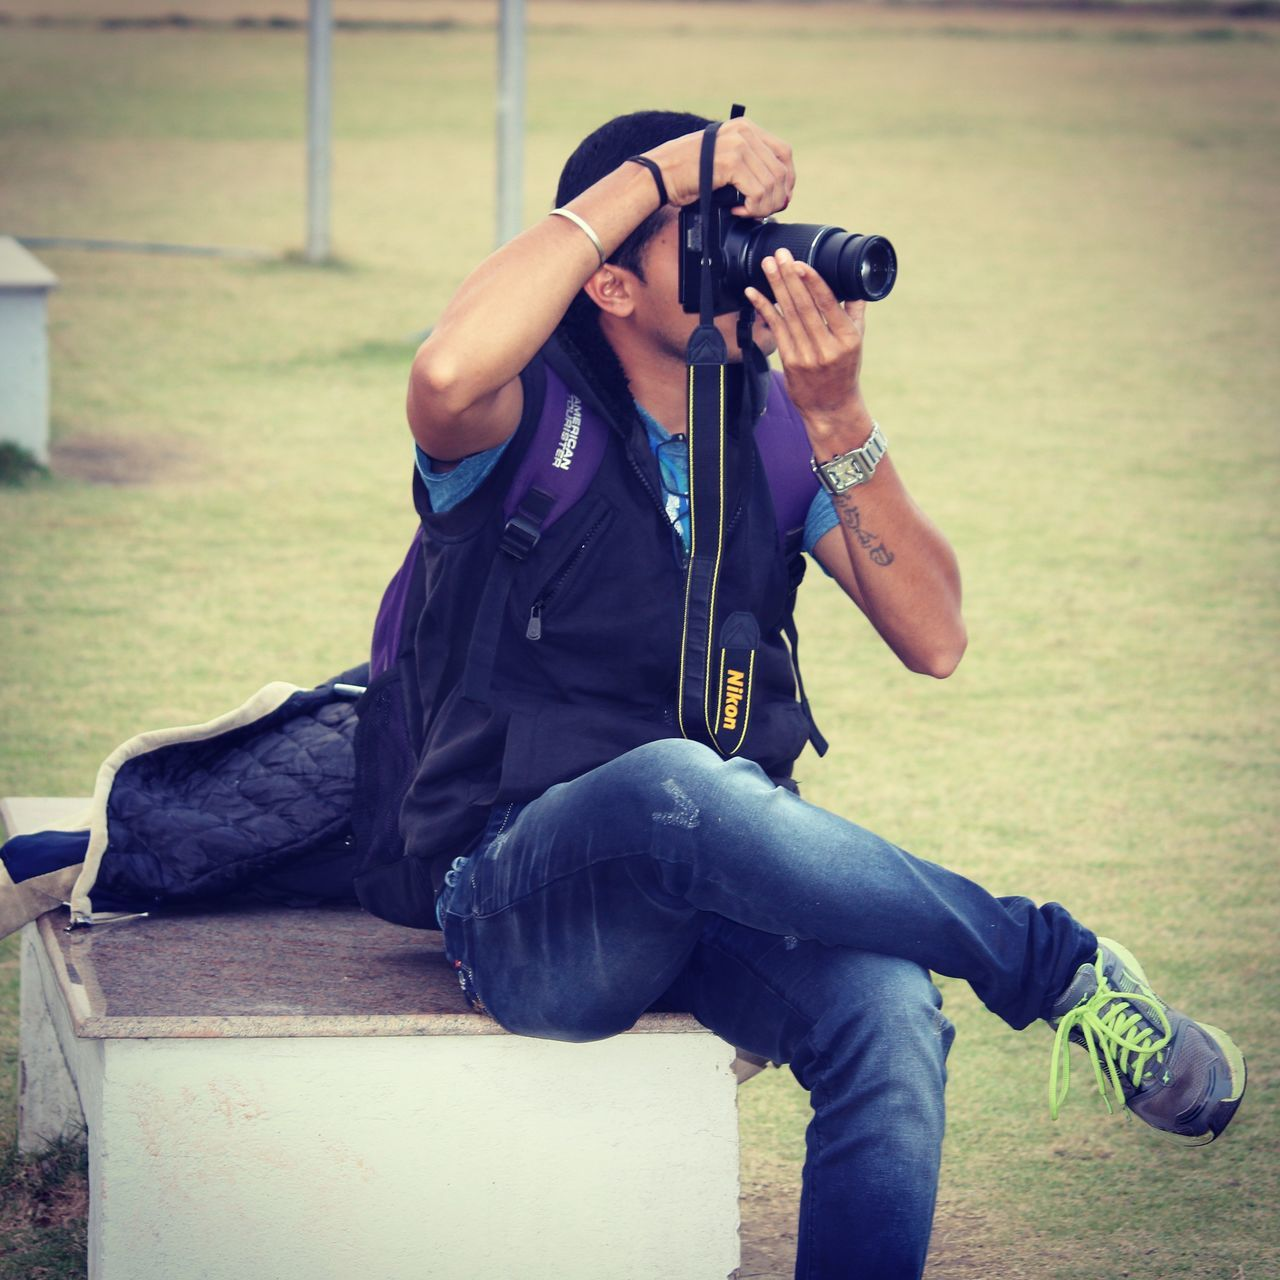 real people, sitting, photographing, holding, camera - photographic equipment, one person, photography themes, photographer, leisure activity, grass, casual clothing, day, outdoors, technology, camera, men, full length, slr camera, one man only, digital single-lens reflex camera, adult, people